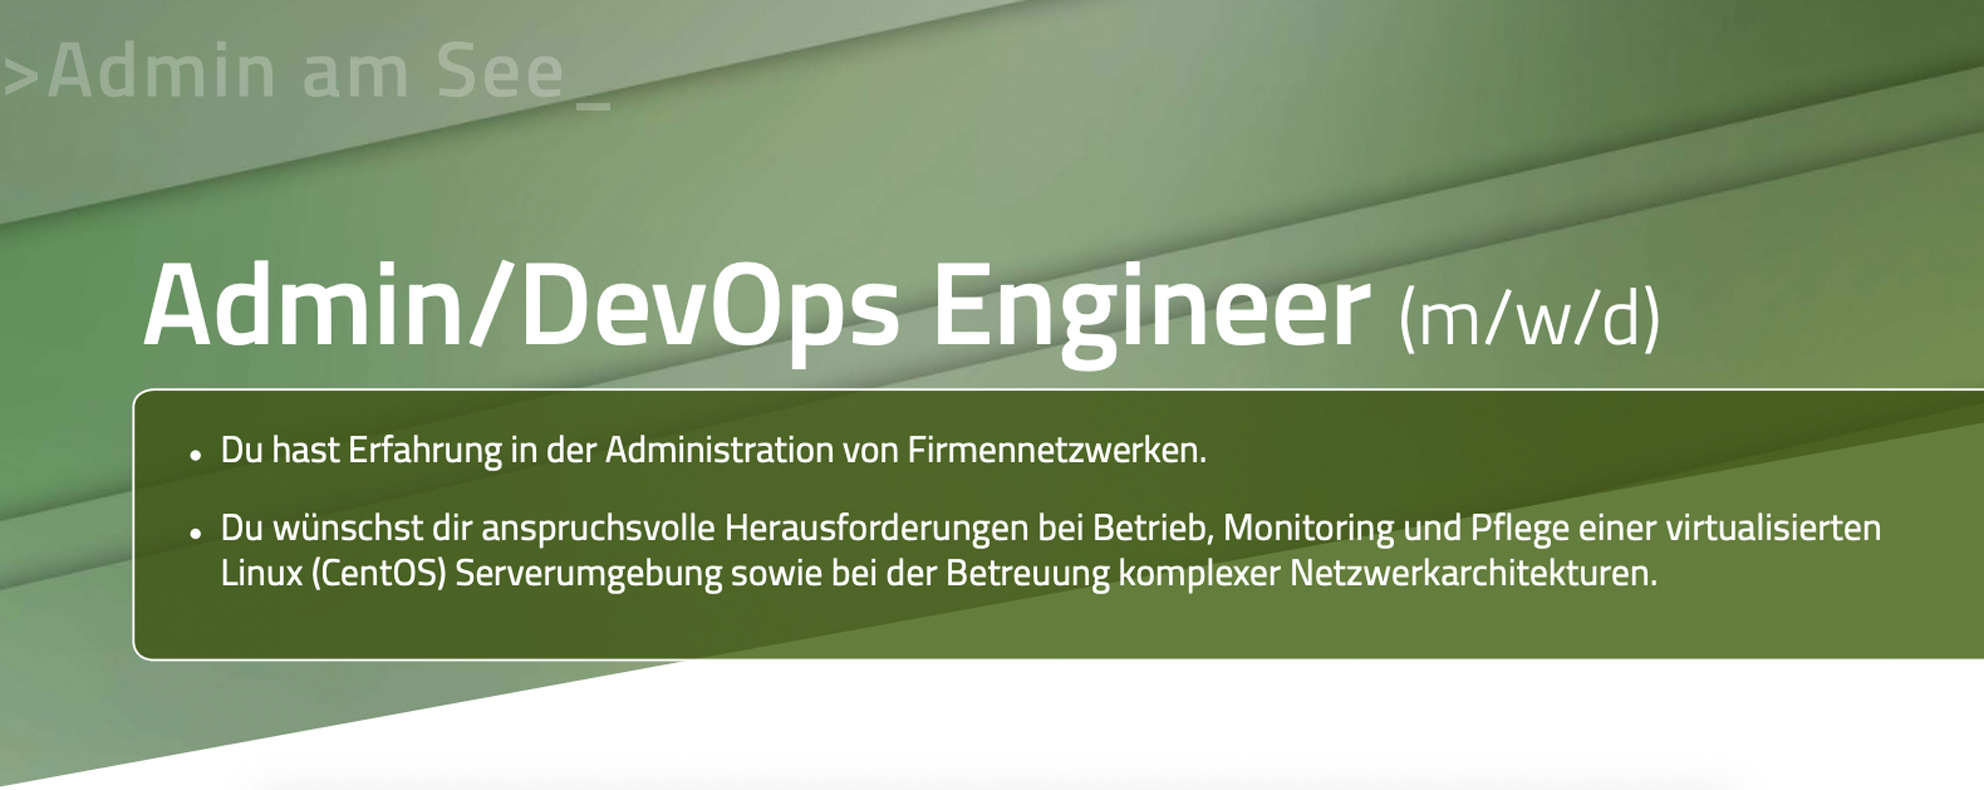 admin-devops-engineer-starnberg